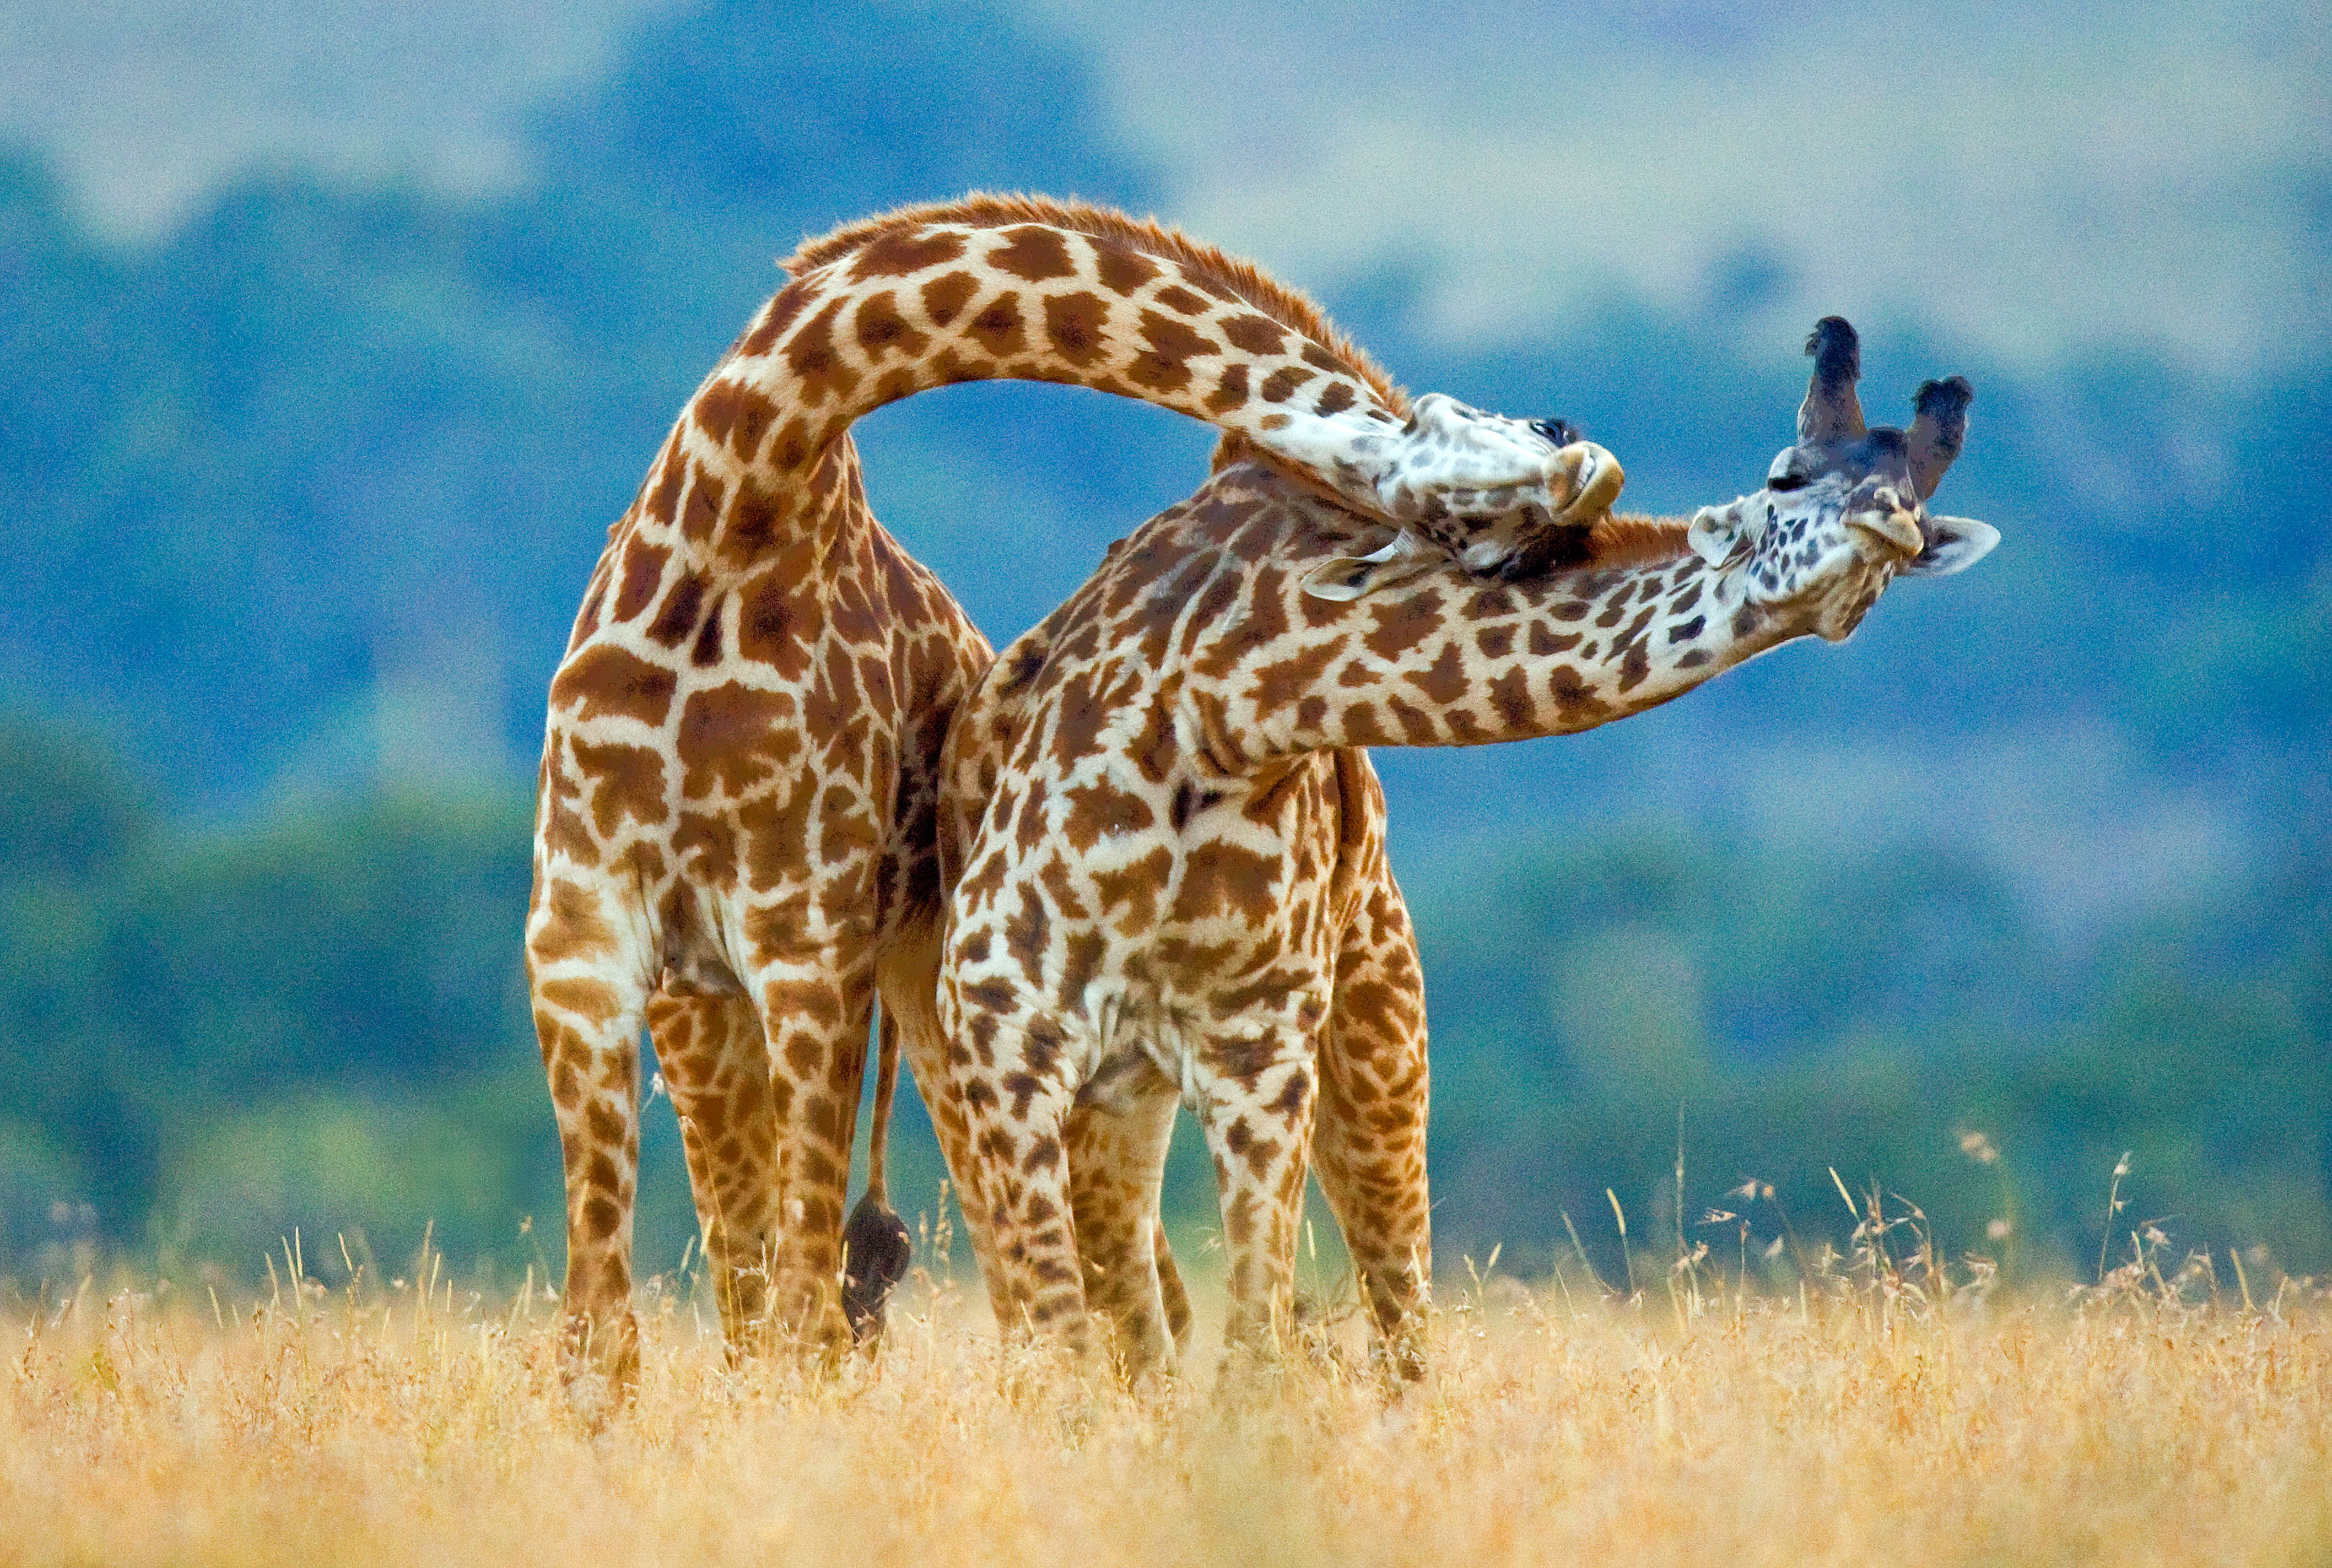 meet the giraffe dancing partners who are head and shoulders above